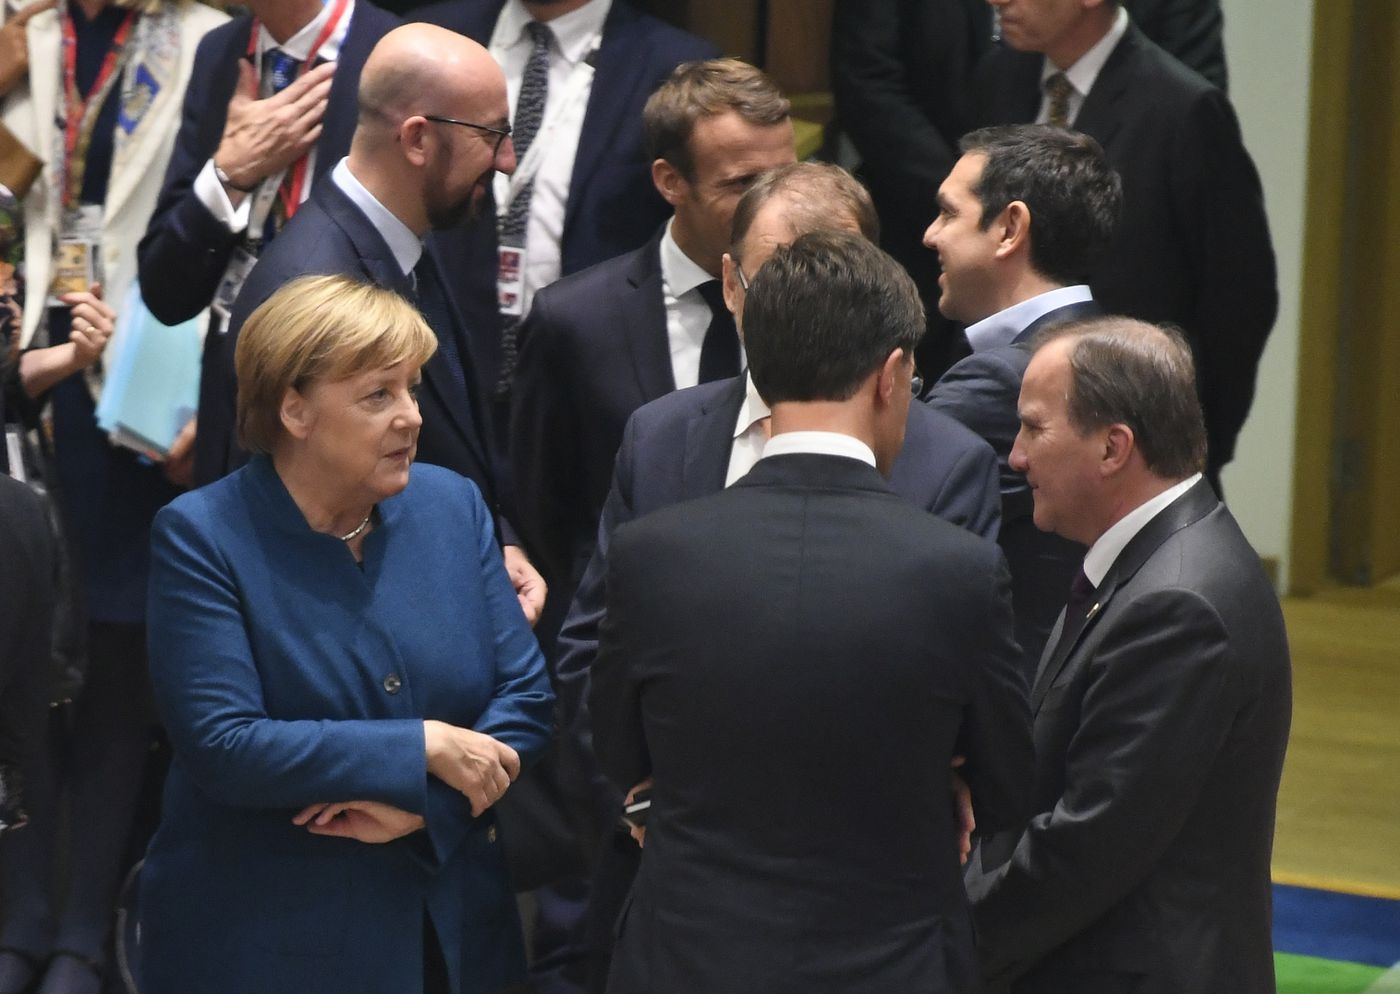 """German Chancellor Angela Merkel, left, speaks with Swedish Prime Minister Stefan Lofven, right, and Dutch Prime Minister Mark Rutte, center, during a round table at an EU summit in Brussels, Wednesday, Oct. 17, 2018. European Union leaders are converging on Brussels for what had been billed as a """"moment of truth"""" Brexit summit but which now holds little promise for a breakthrough. (Piroschka van de Wouw, Pool Photo via AP)"""